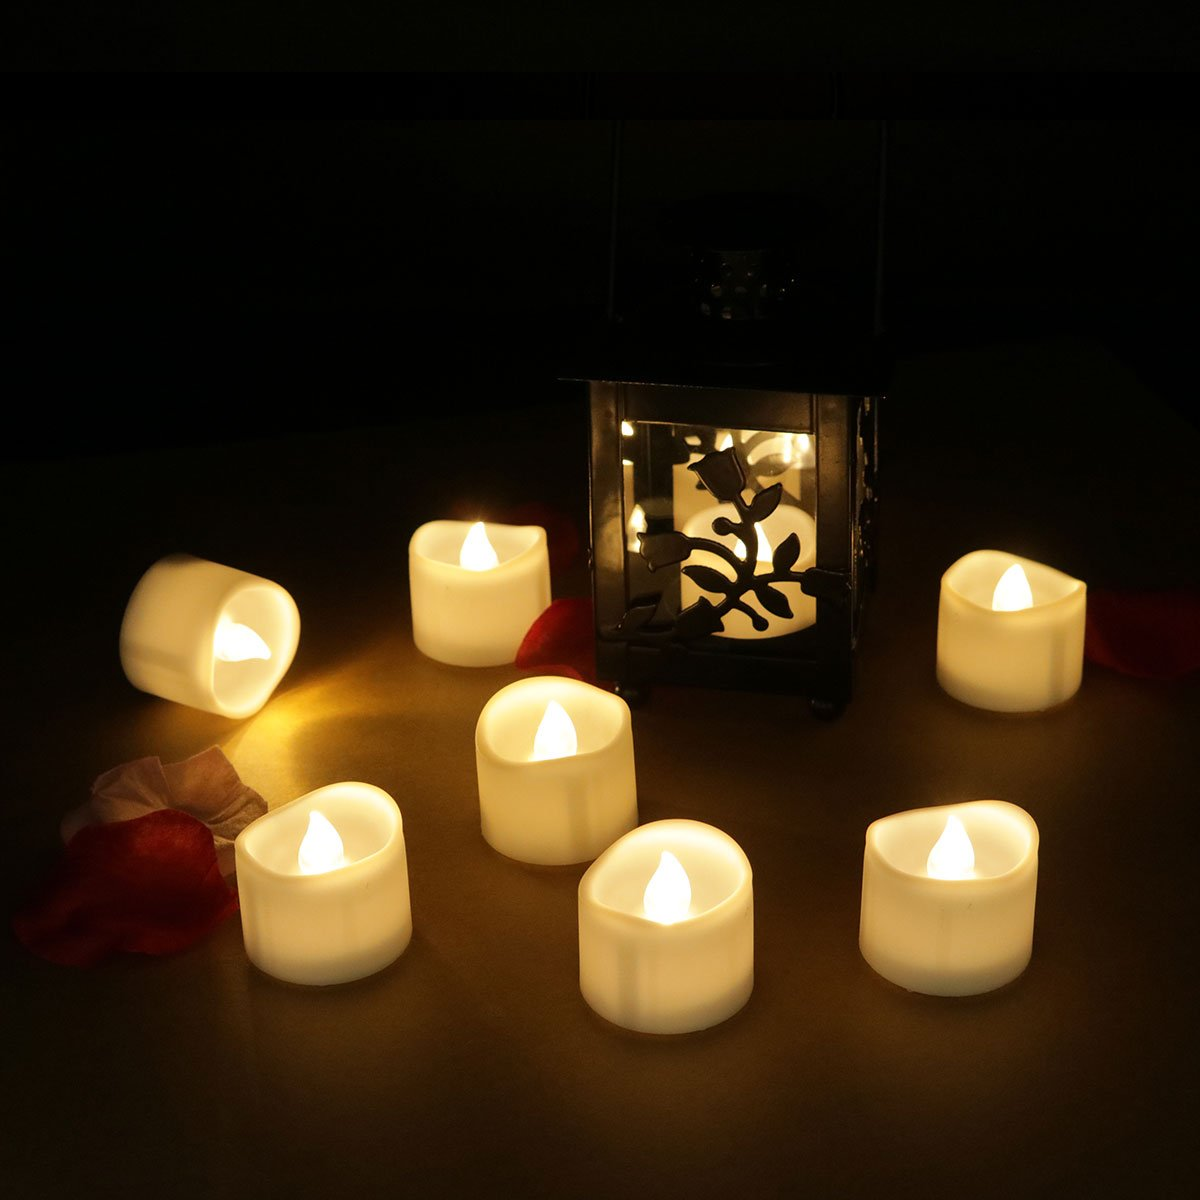 Frestree Flameless LED Candles Battery Powered Halloween Tea Lights Warmer Electric Votive Candle Flickering Tealights for Christmas Wedding Party Decorations Home Décor Warm White 96pcs